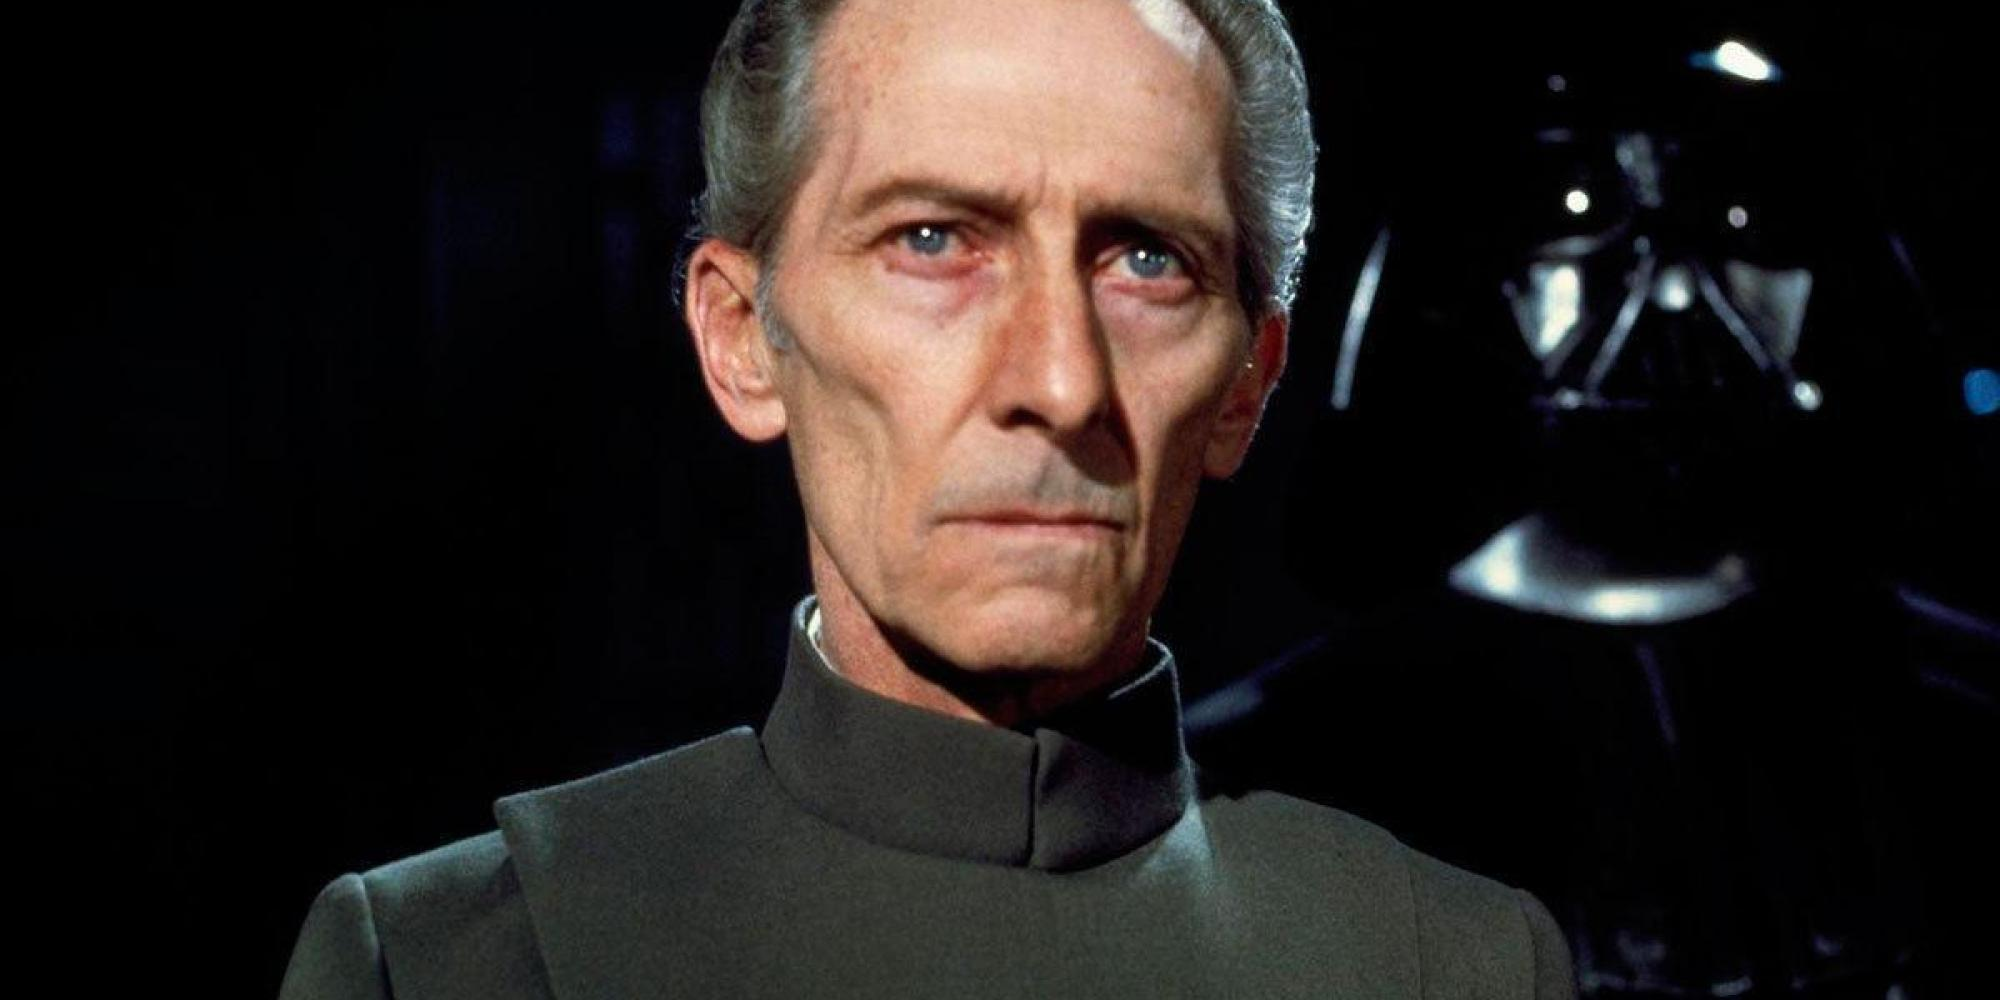 peter cushing in rogue one